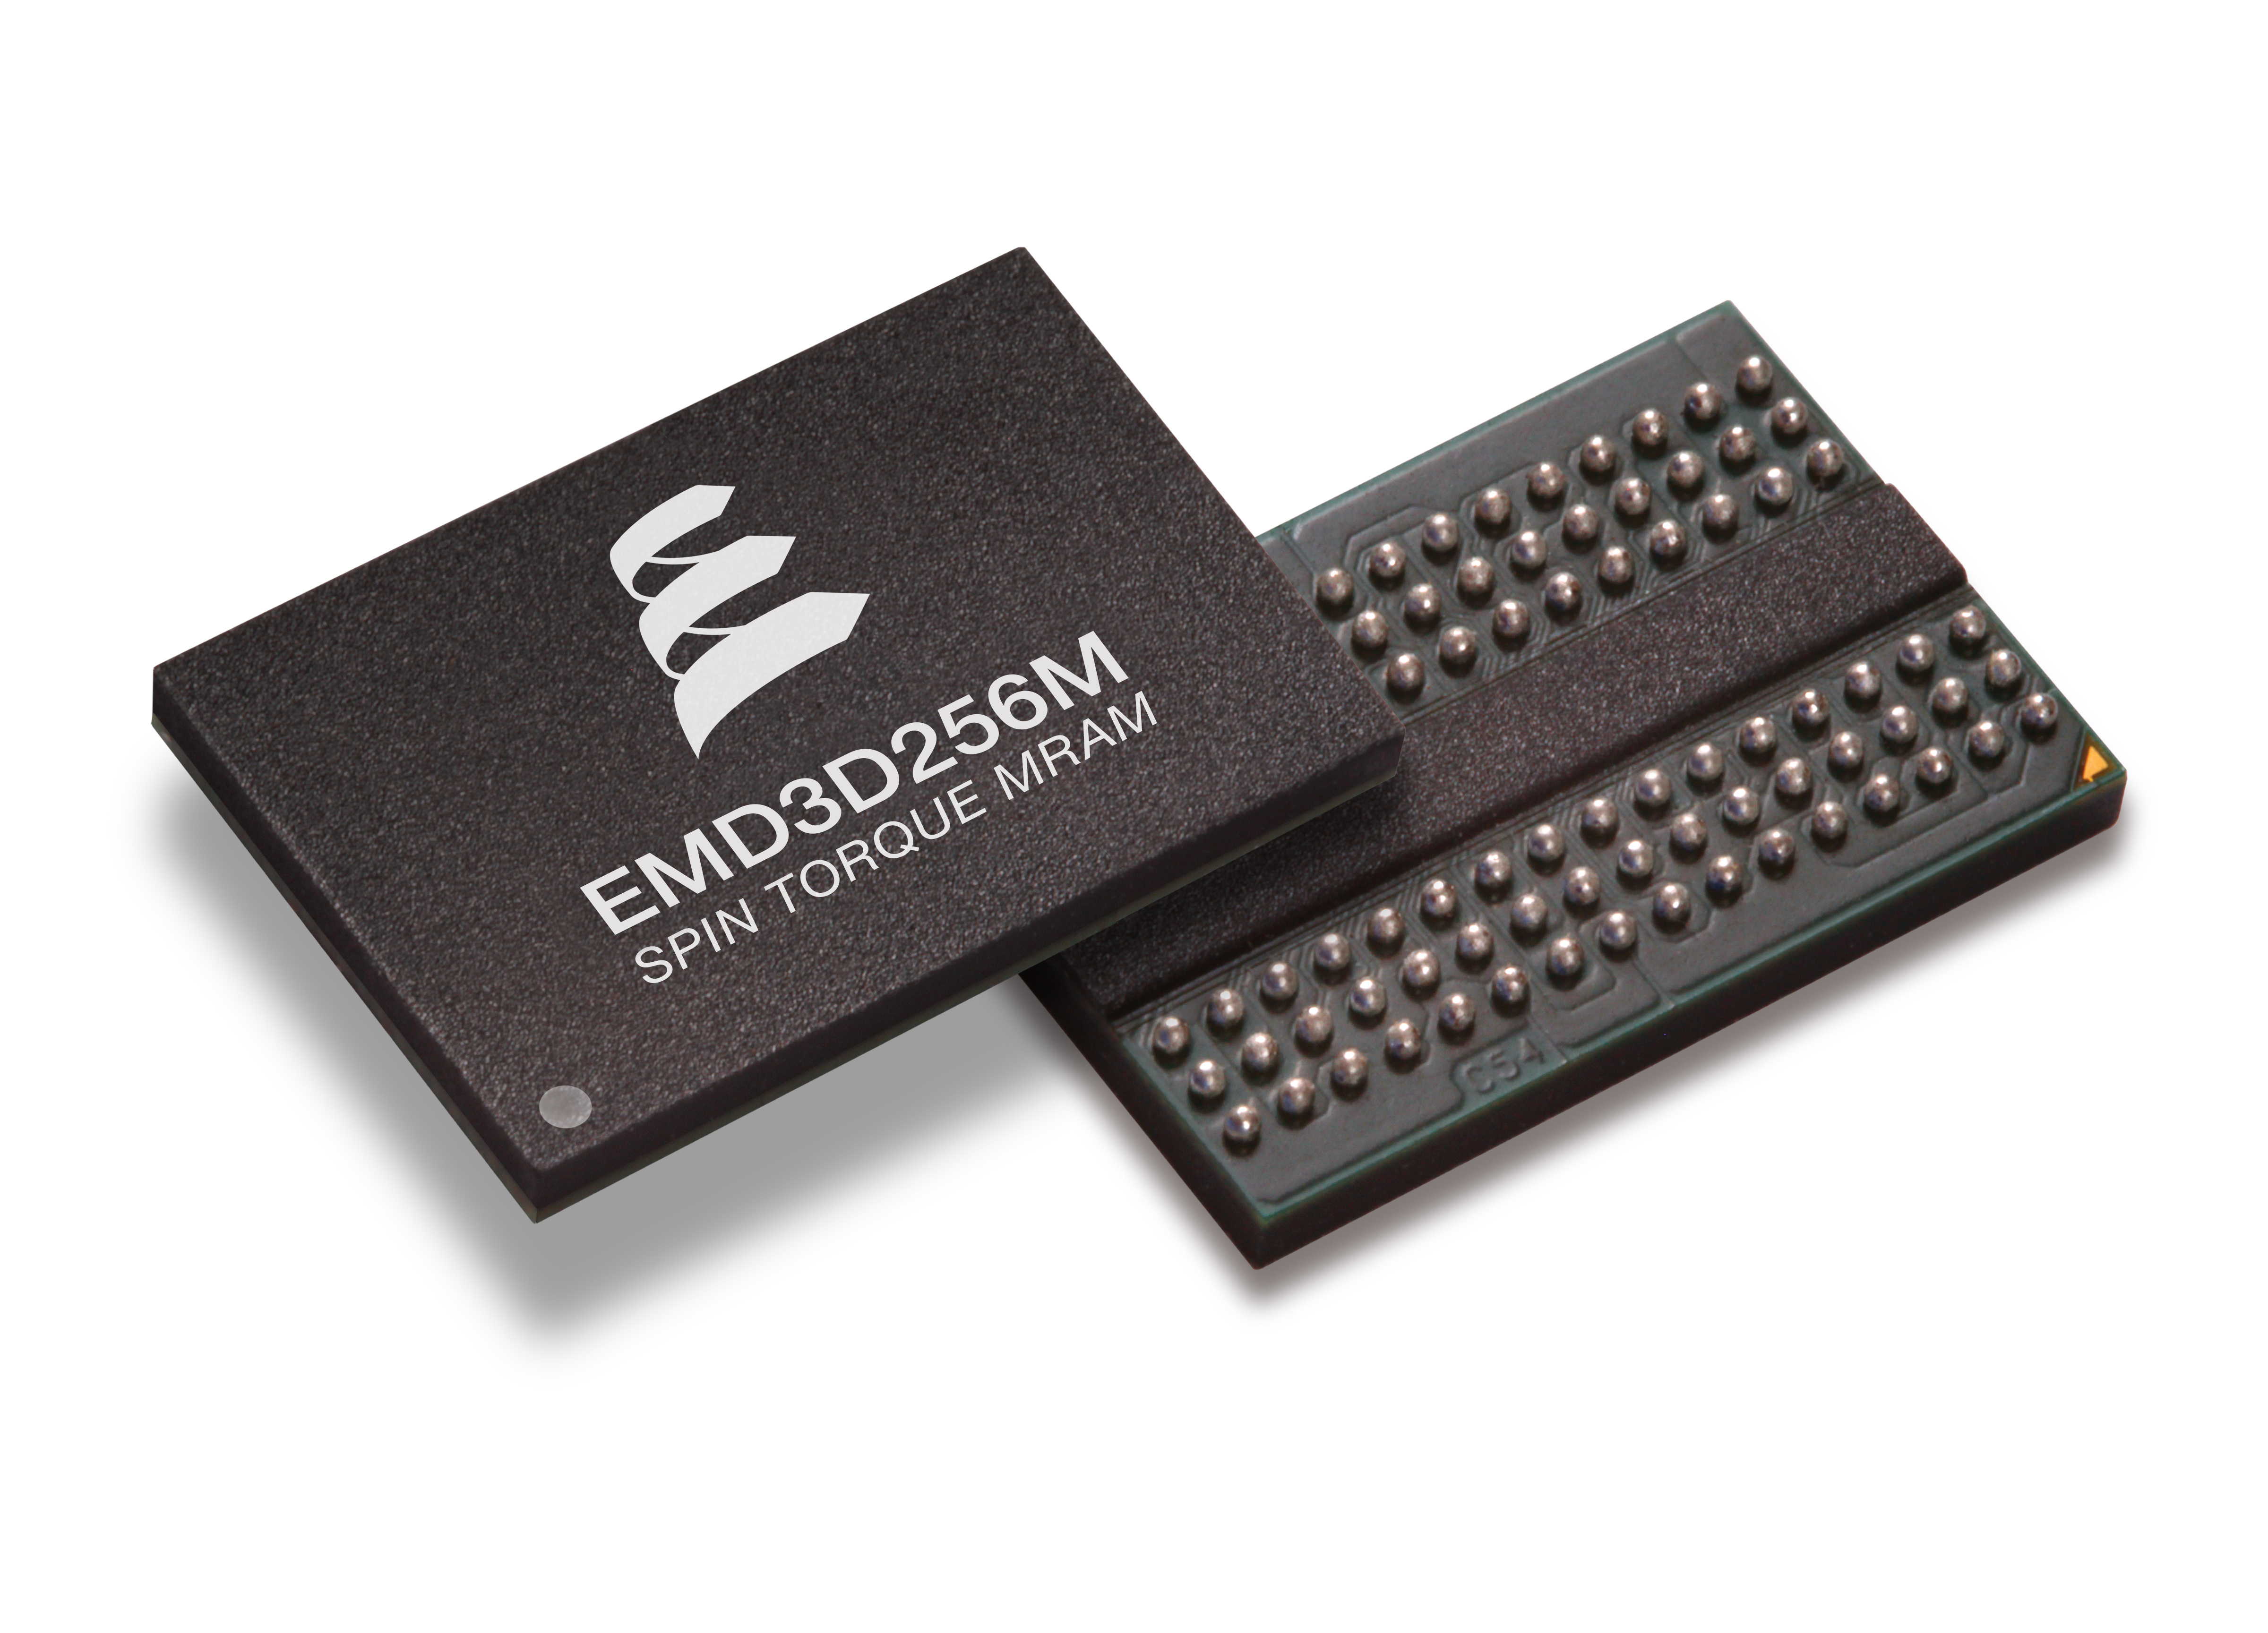 Everspin Releases Highest Density Mram Products To Create Fastest And Most Reliable Non Volatile Storage Cl Memory Business Wire